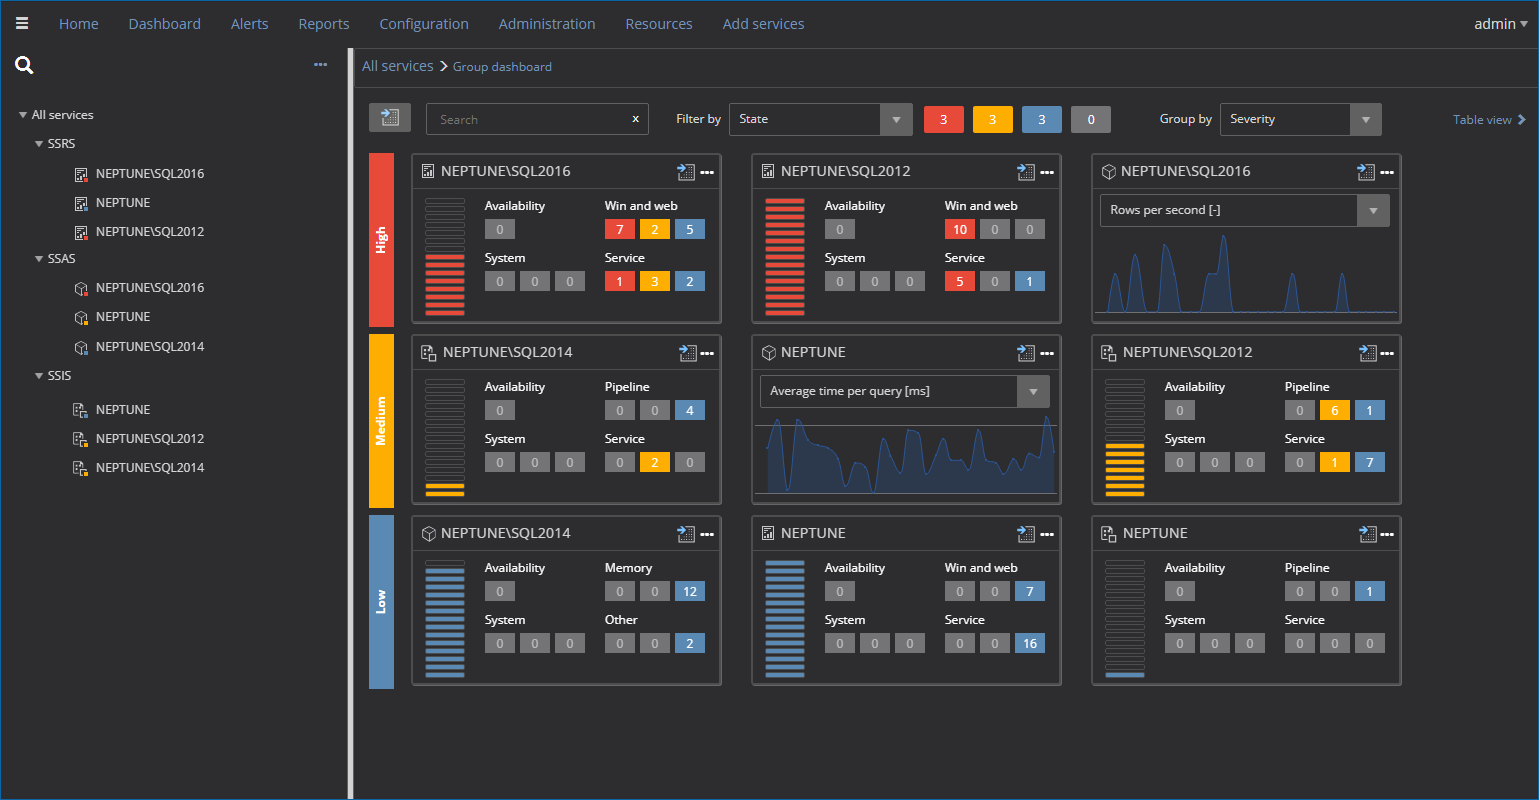 SQL Server business intelligence monitoring services for SSIS, SSAS and SSRS activity and performance